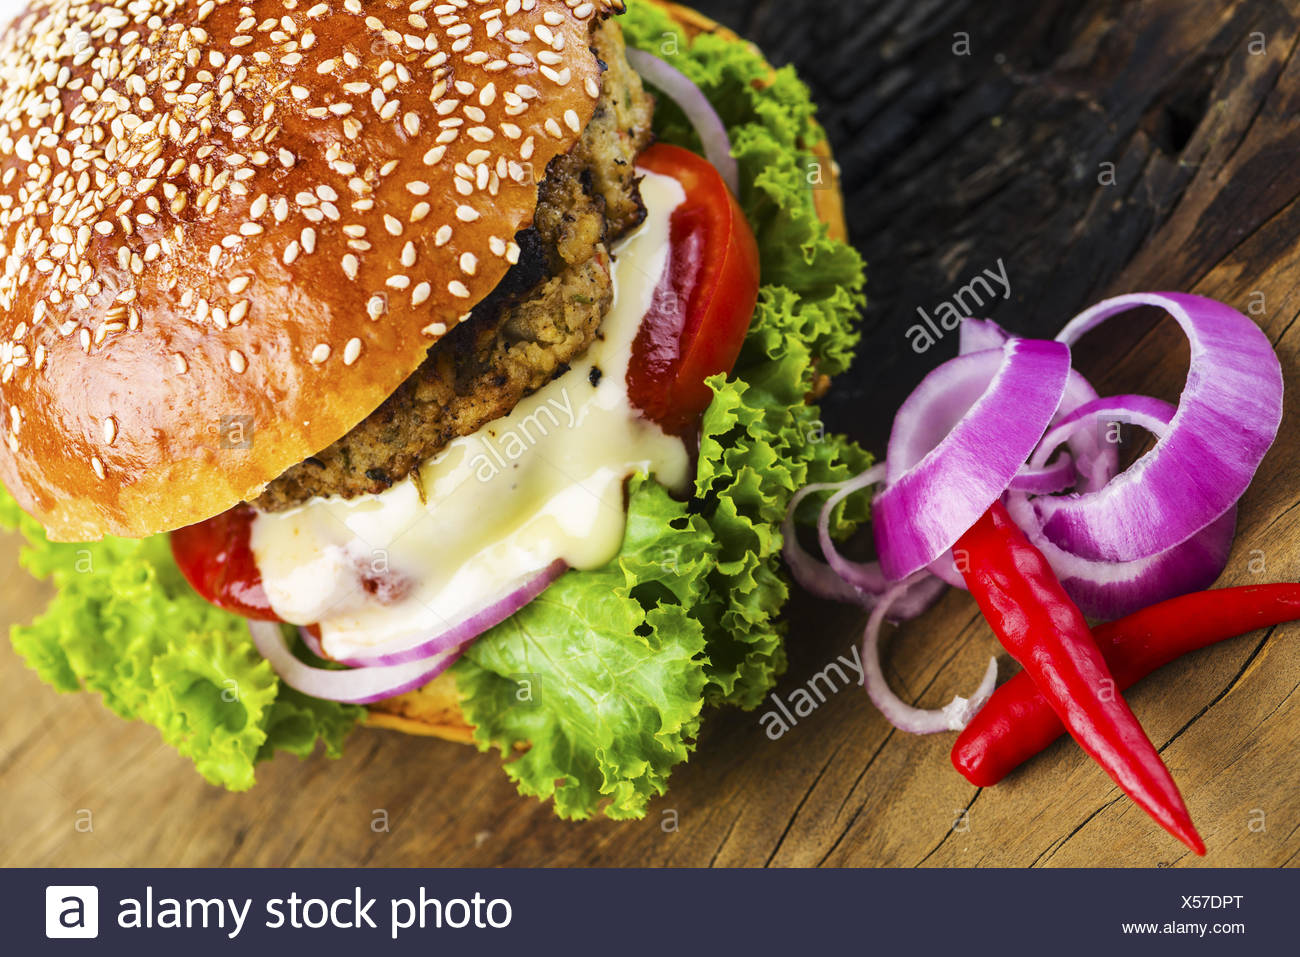 Yummy Hamburger with Veggies on Wooden Table - Stock Image